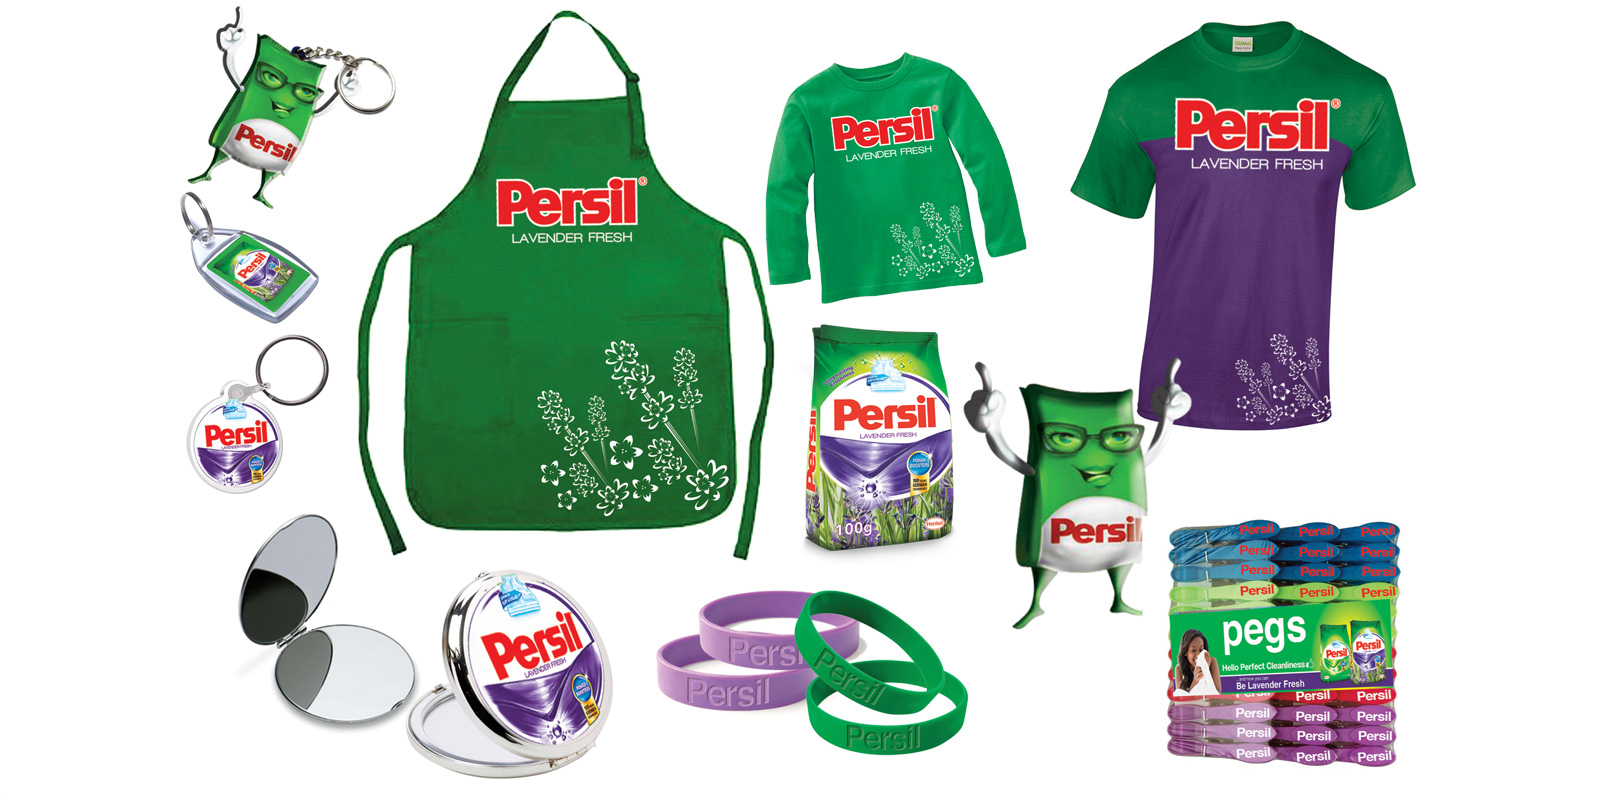 4-persil-lavender-promotional-items